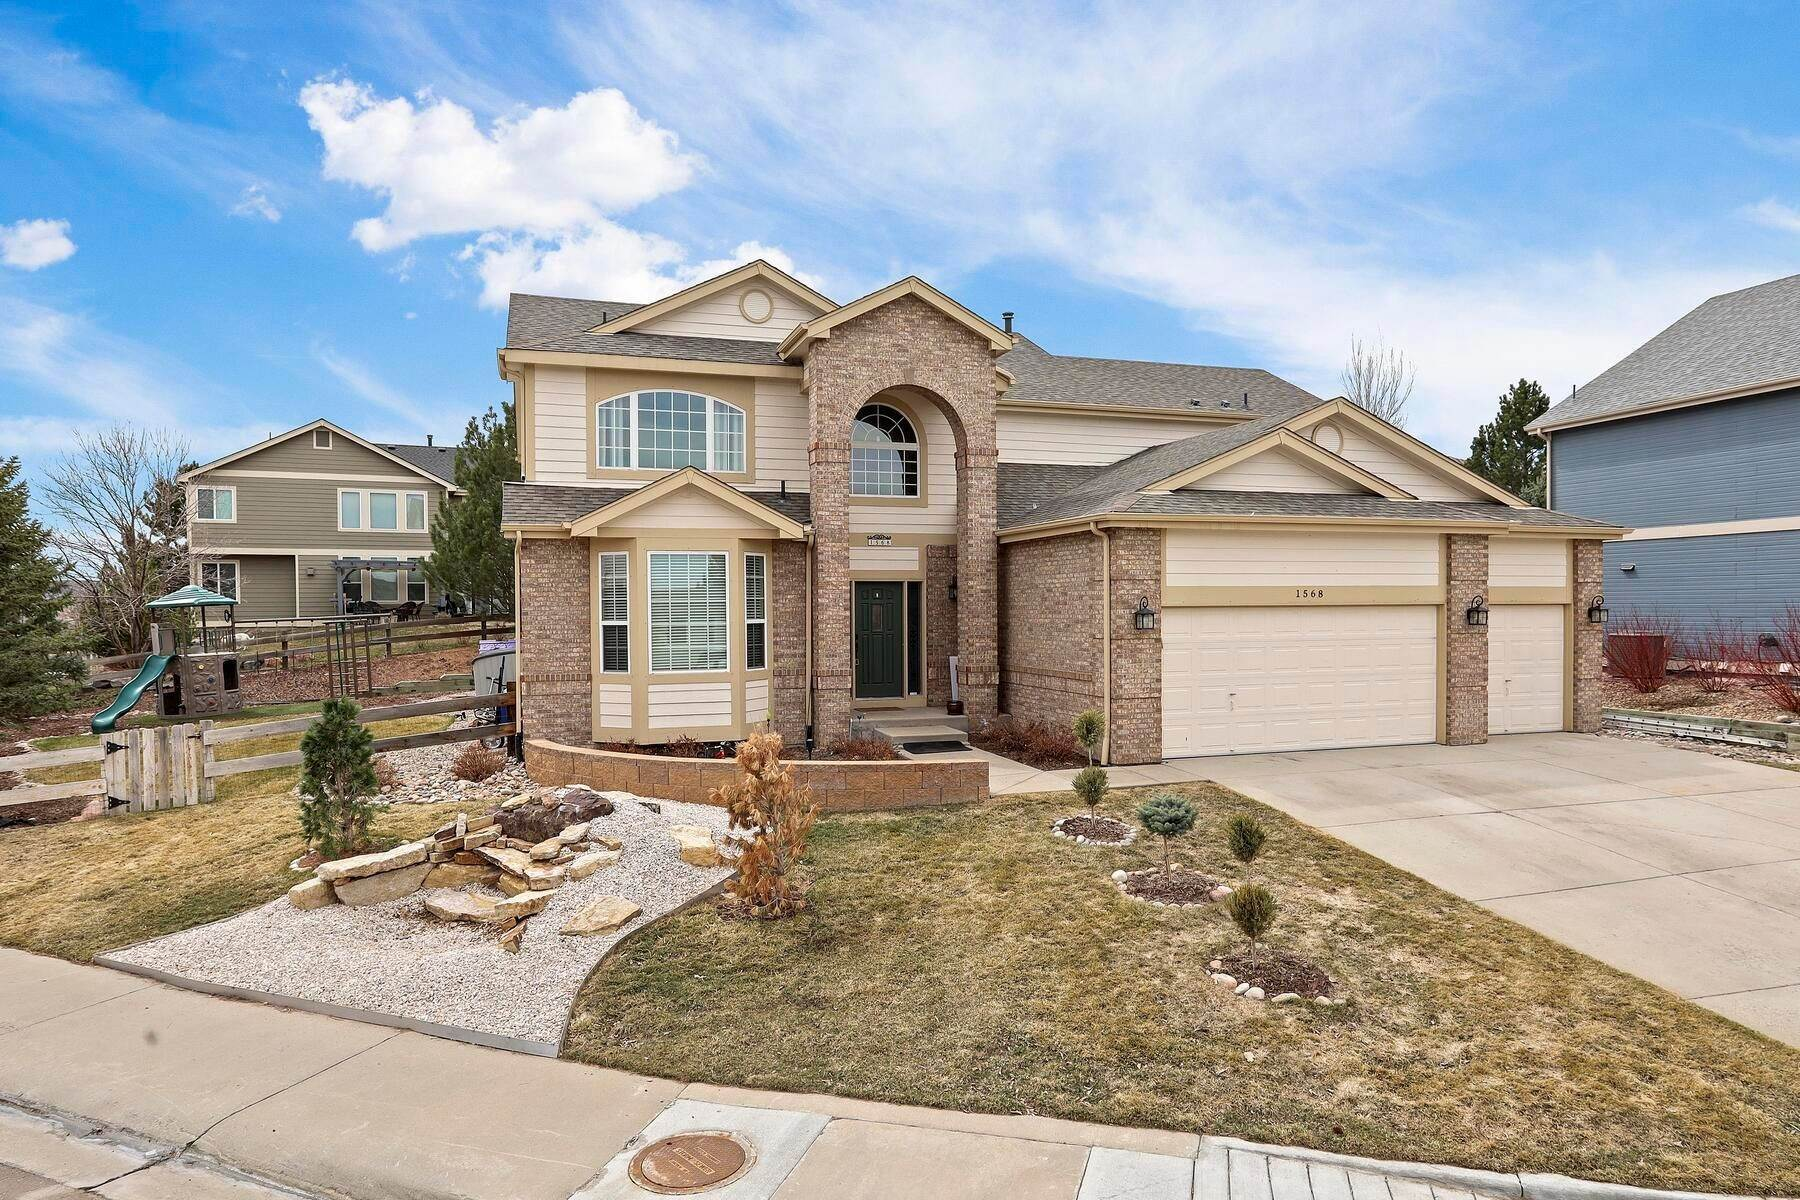 Single Family Homes for Active at 1568 Rosemary Drive, Castle Rock, Co, 80109 1568 Rosemary Drive Castle Rock, Colorado 80109 United States